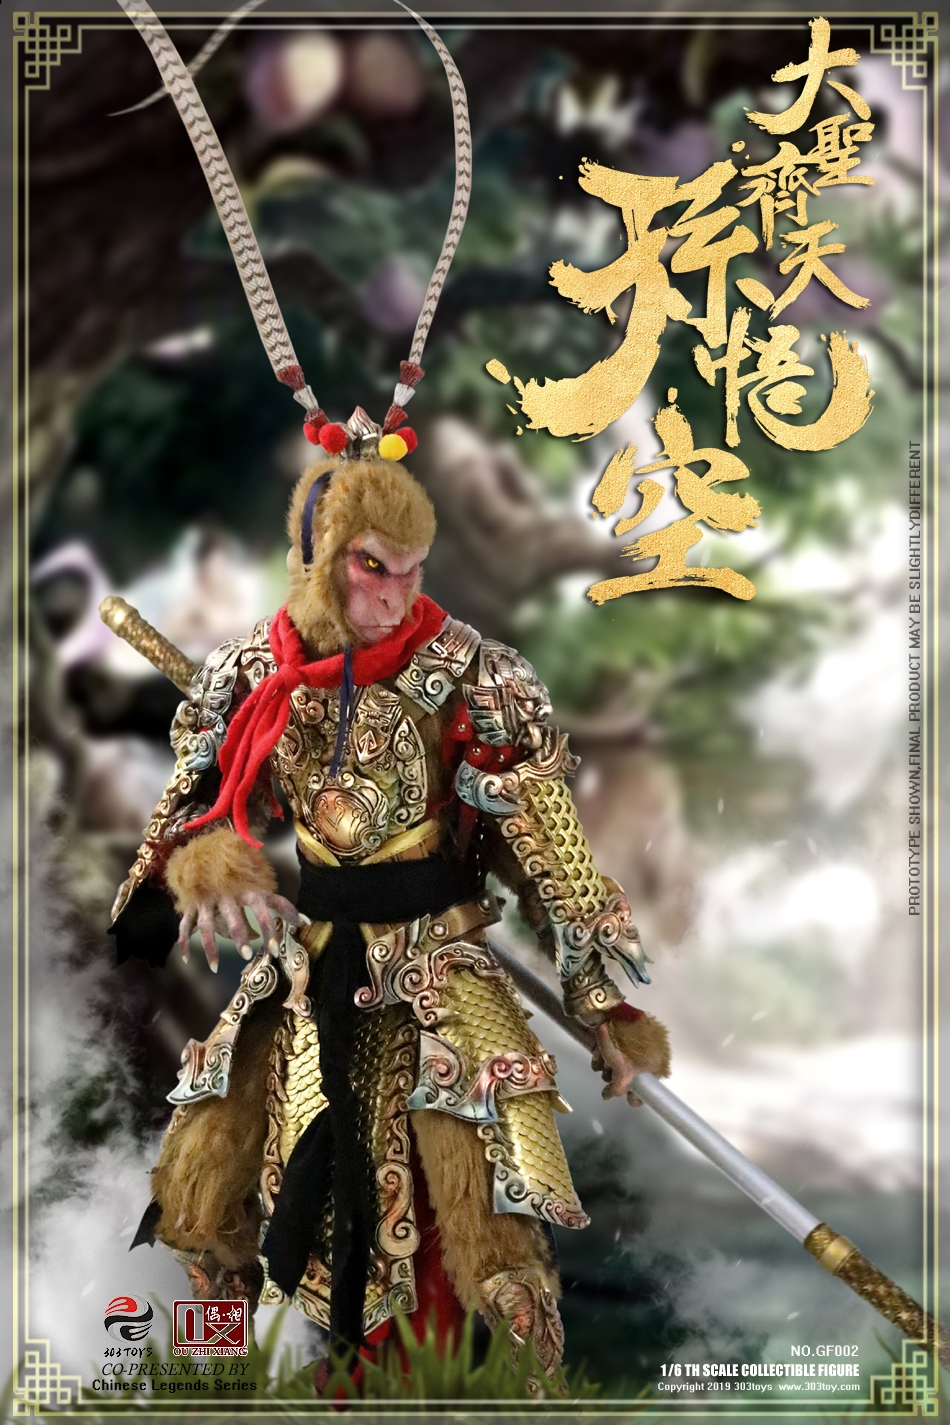 Mythology - NEW PRODUCT: 303TOYS x Evening phase: 1/6 National Wind Legend Series - Sun Wukong Monkey King Apocalypse & Dasheng Qitian & Stepping 18090911